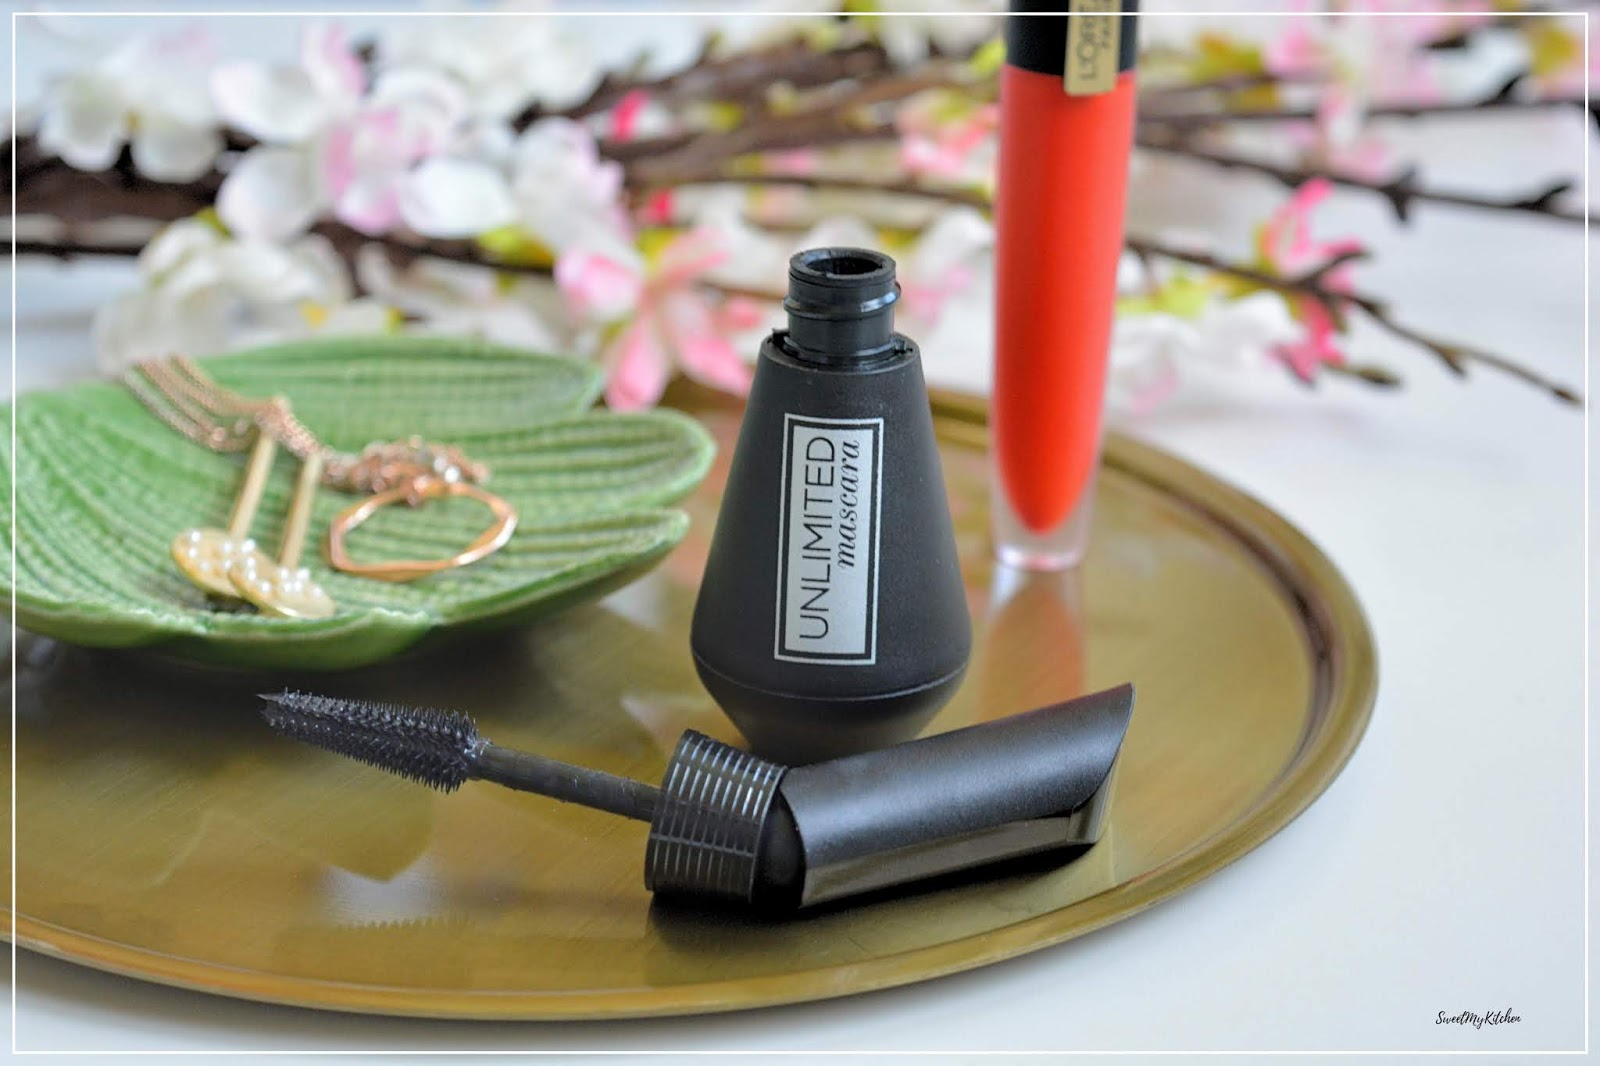 L'oreal Unlimited mascara review